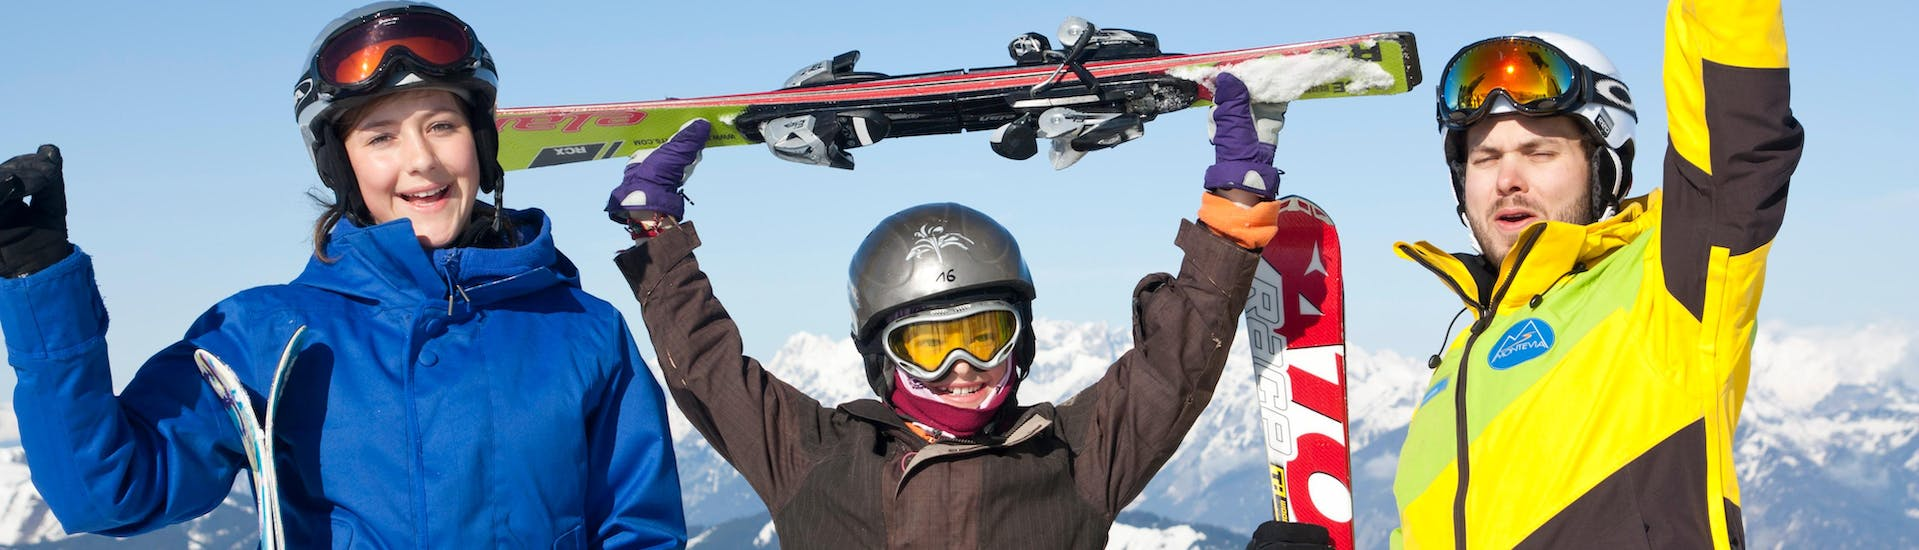 Ski Lessons for Kids (6-16 years) - Advanced